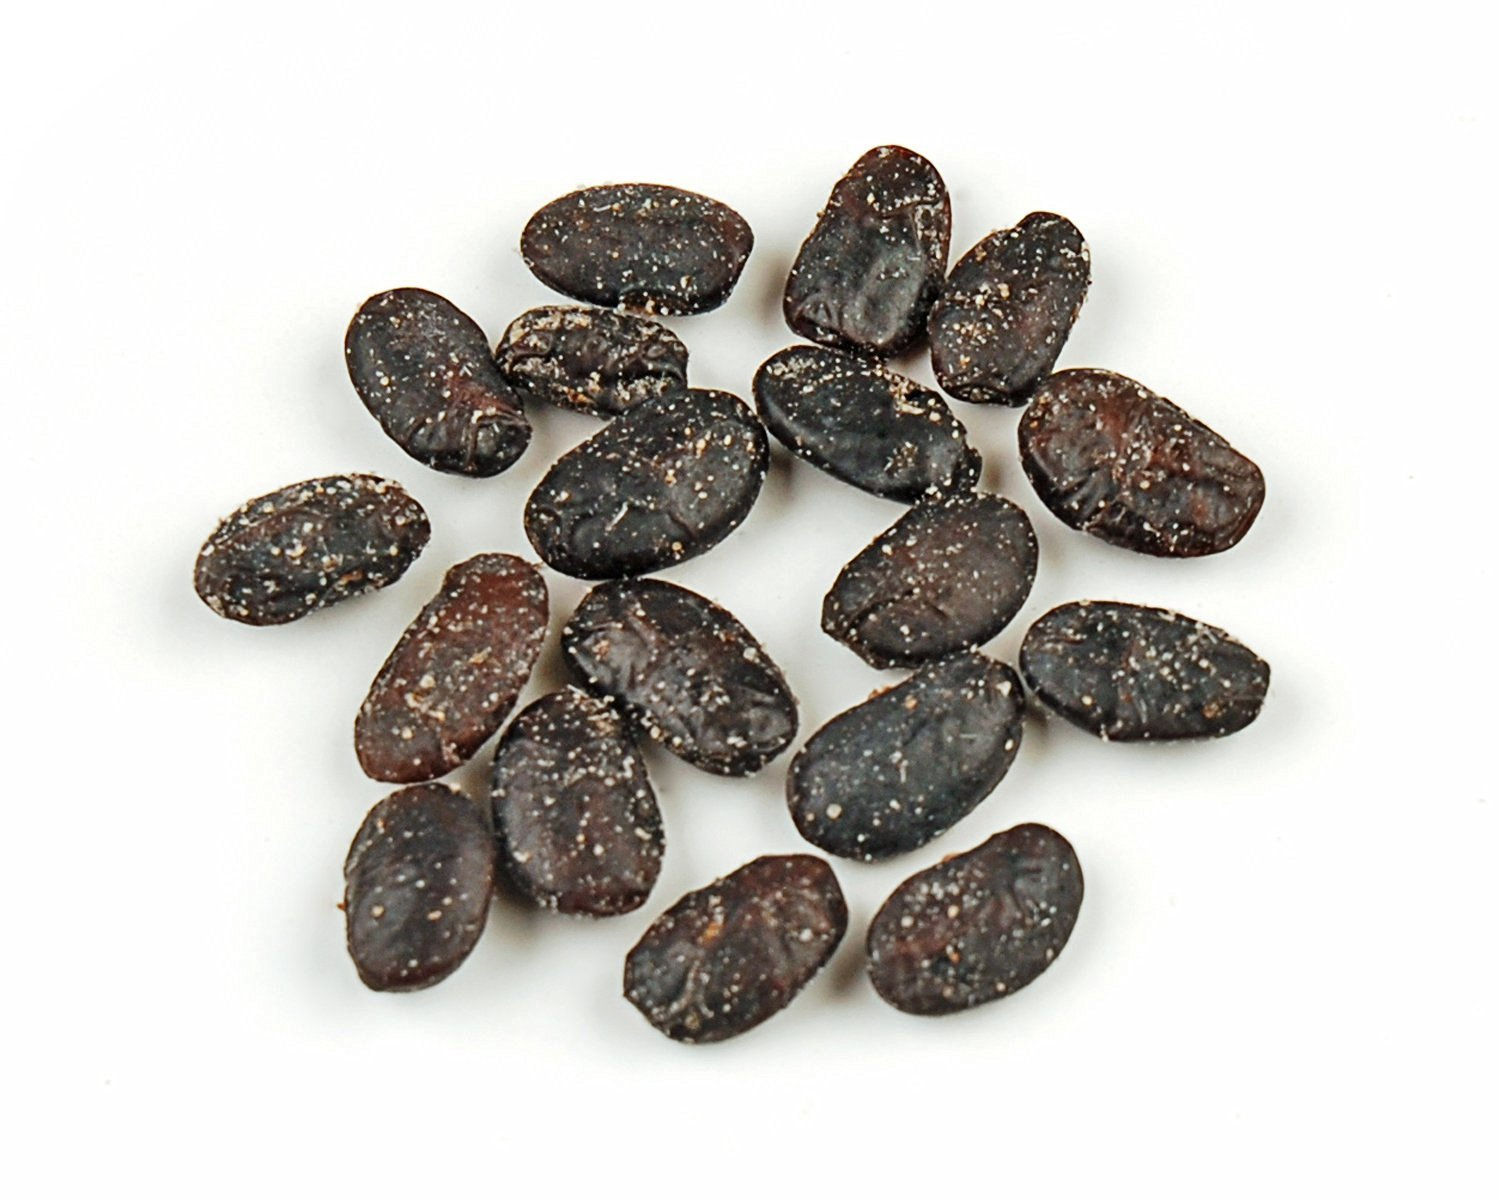 Hoosier Hill Farm Fermented Black Beans, 1.5 Pound